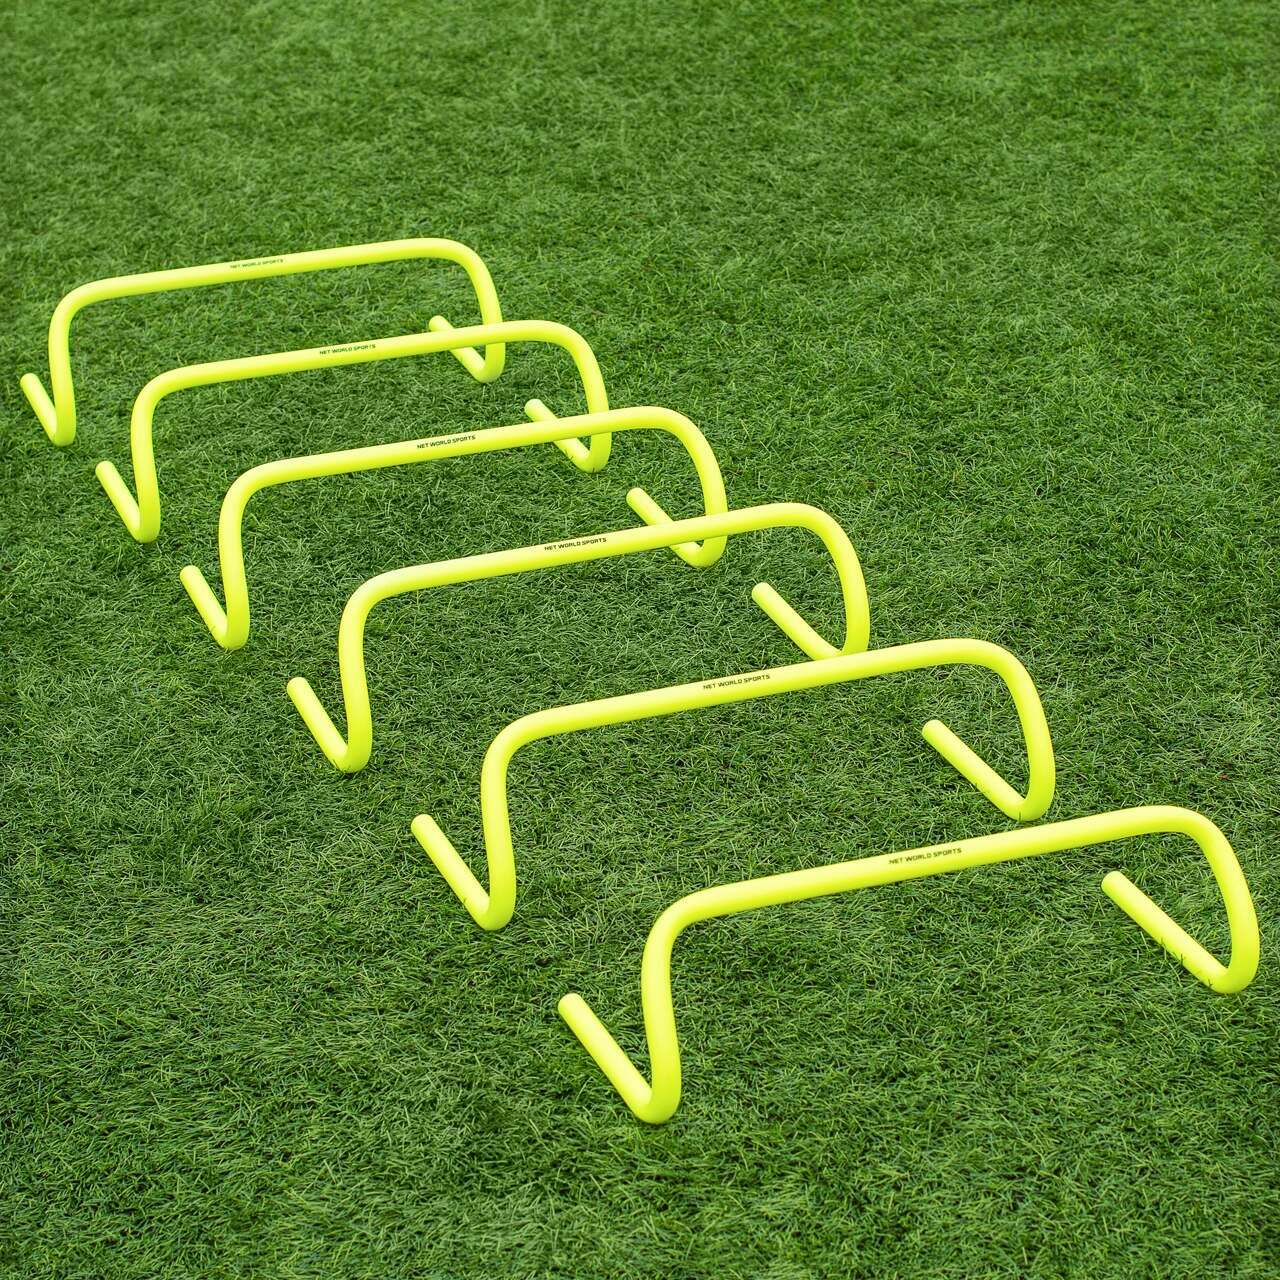 6 Inch FORZA Speed Training Hurdles [6 Pack]